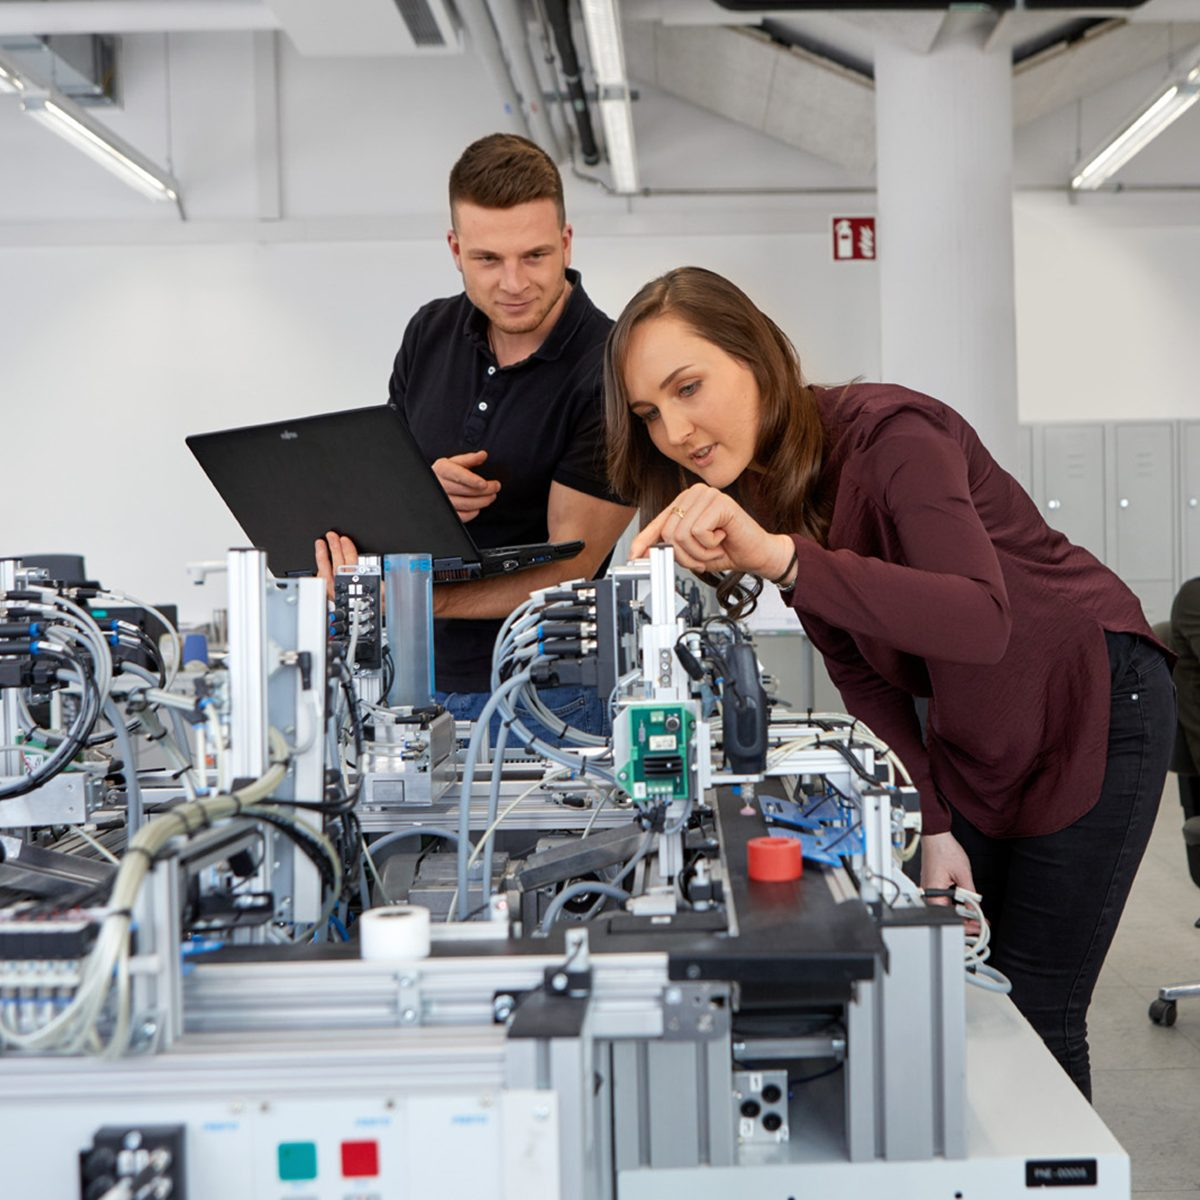 Apprenticeships and Dual Study Programs at Siemens.